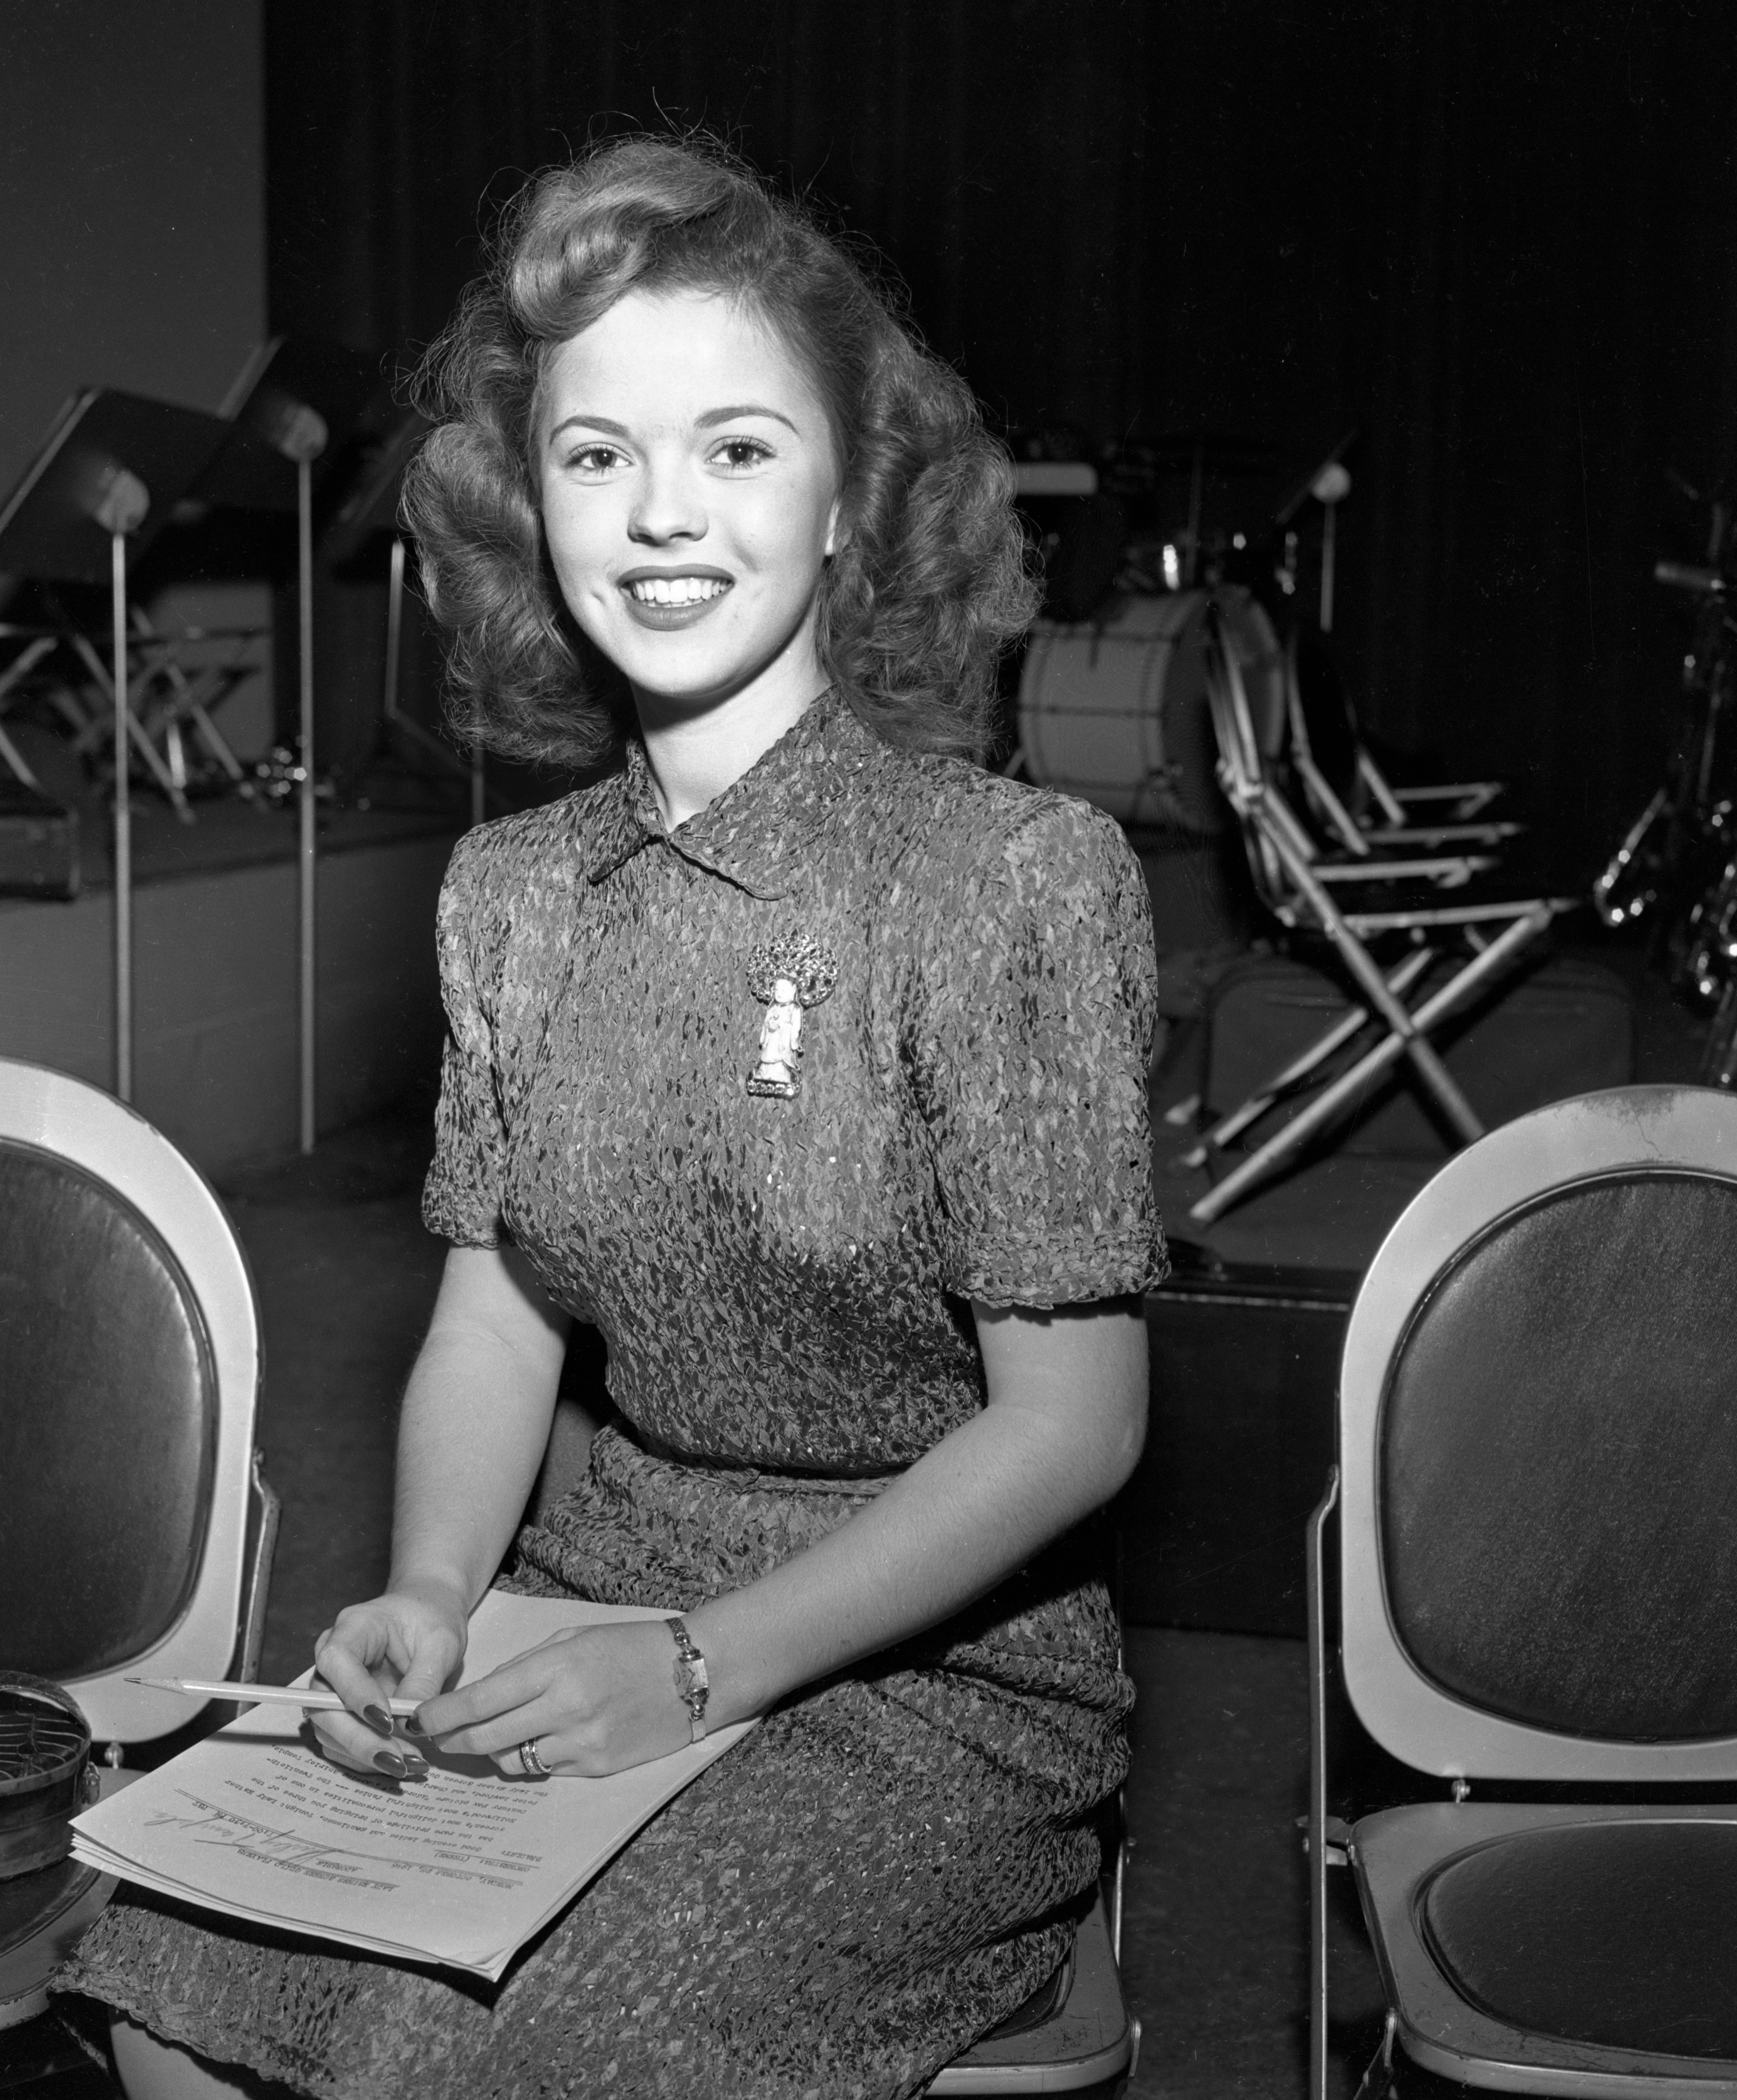 Shirley Temple on set, 1946. (Credit: CBS via Getty Images)